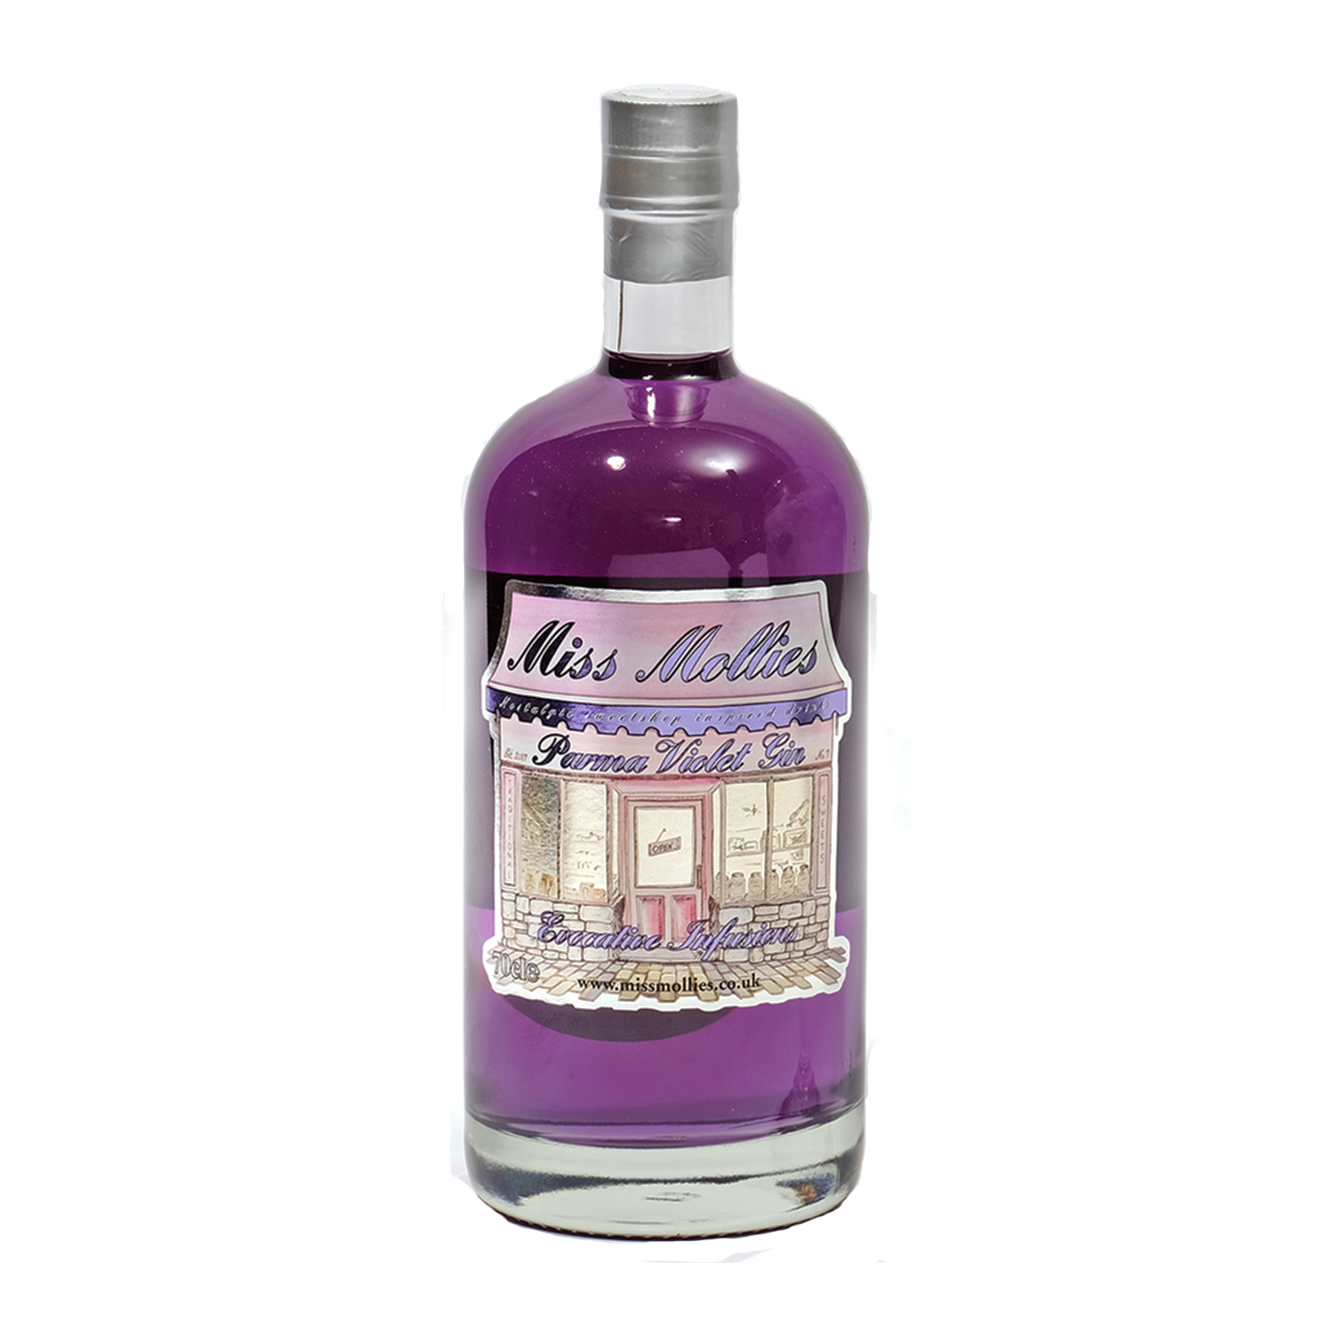 Miss Mollies Parma Violet Gin